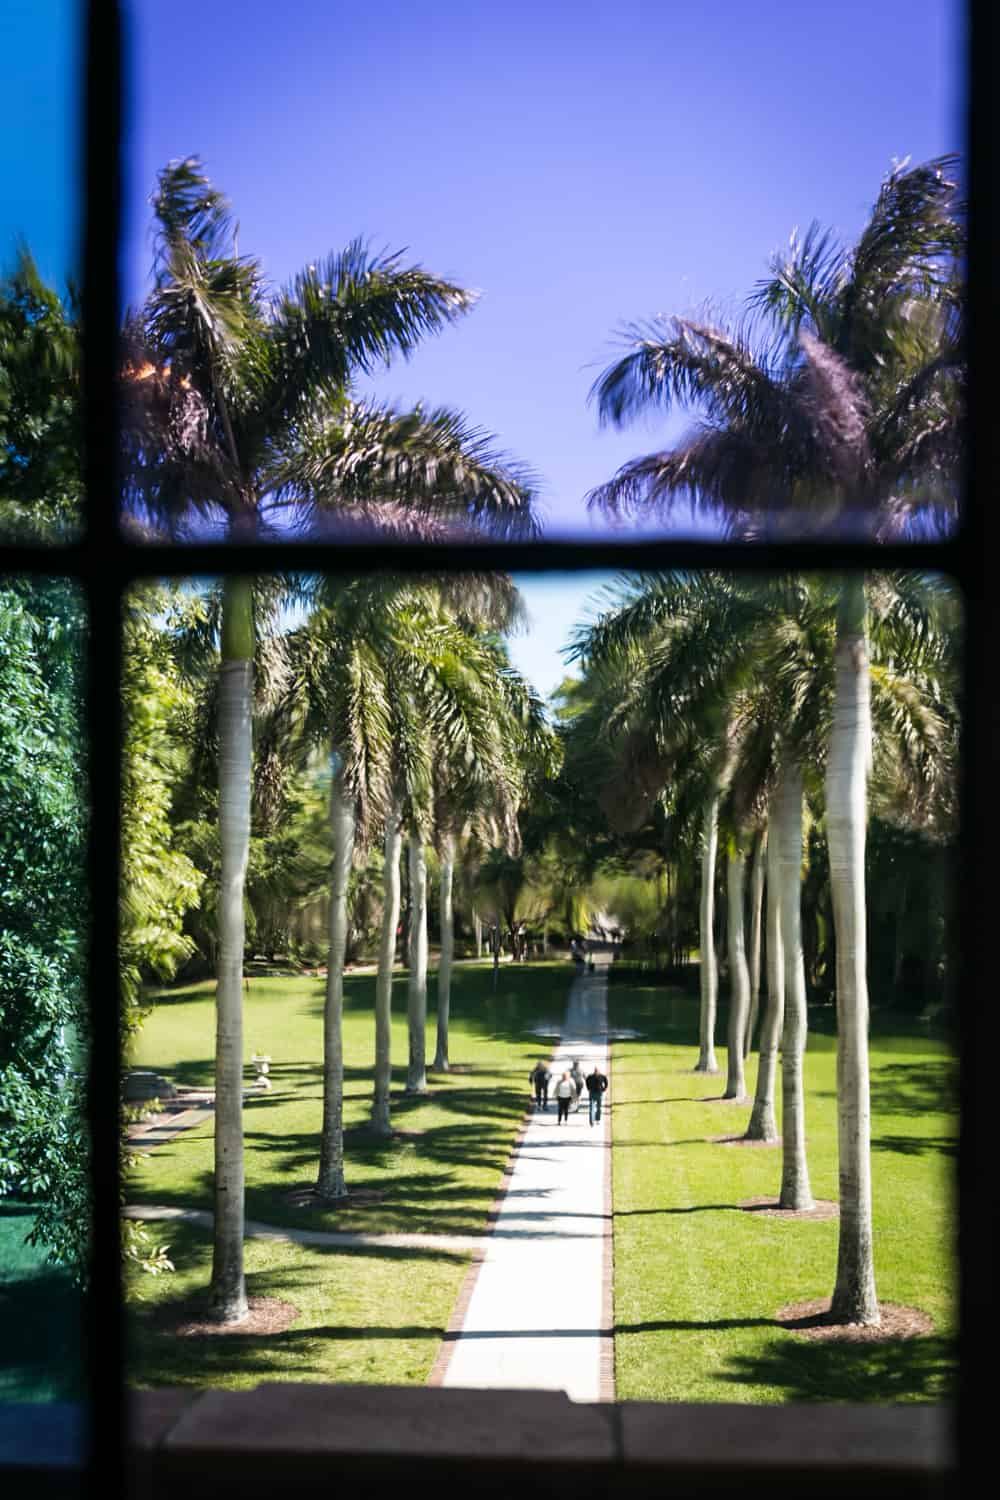 Photos of Sarasota including view of palm-lined pathway in front of Ca d'Zan